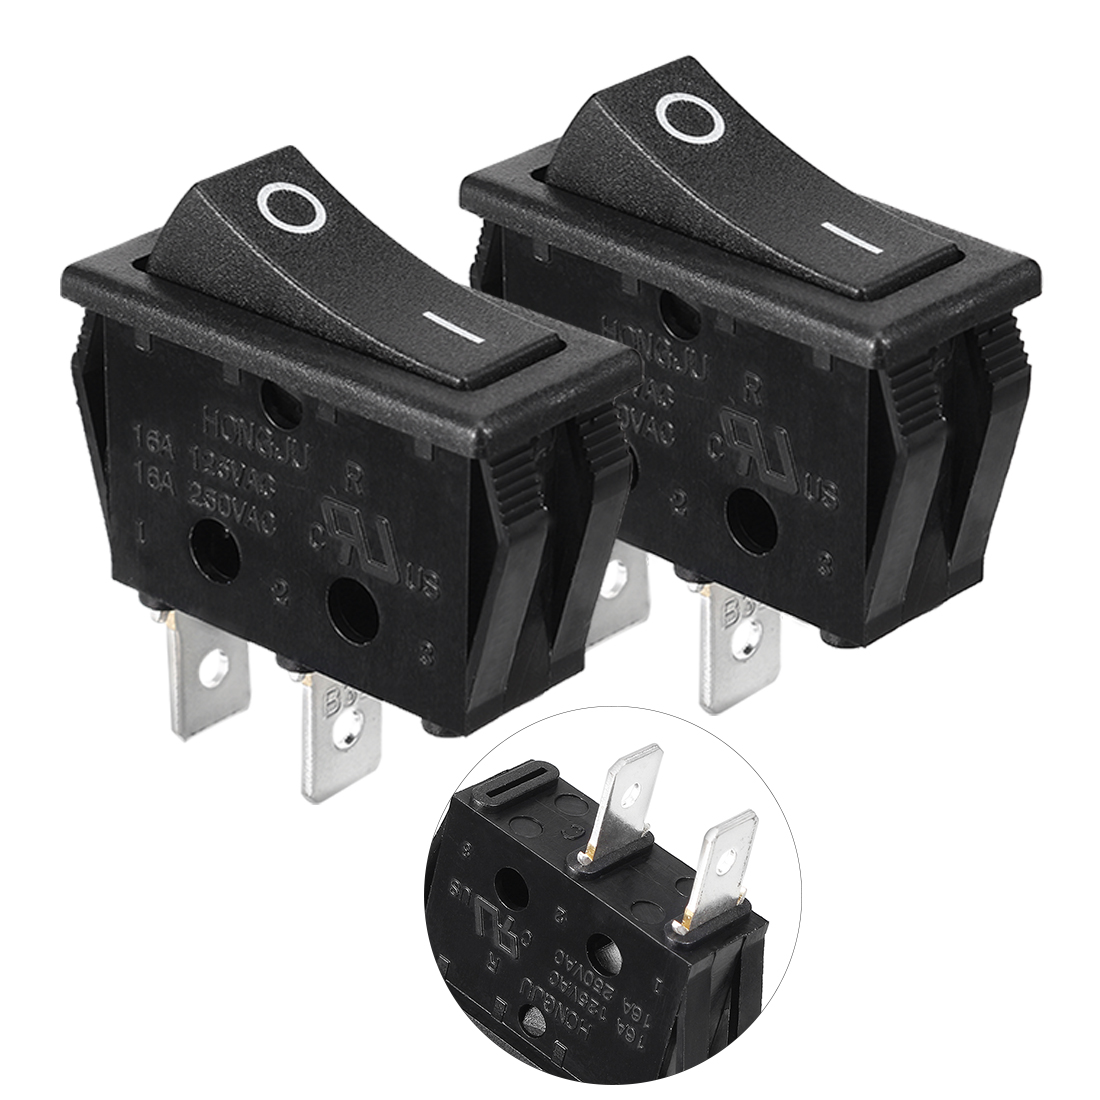 2 Pcs AC 15A/125V 15A/250V On/Off SPST Panel Mount Snap In Boat Rocker Switch